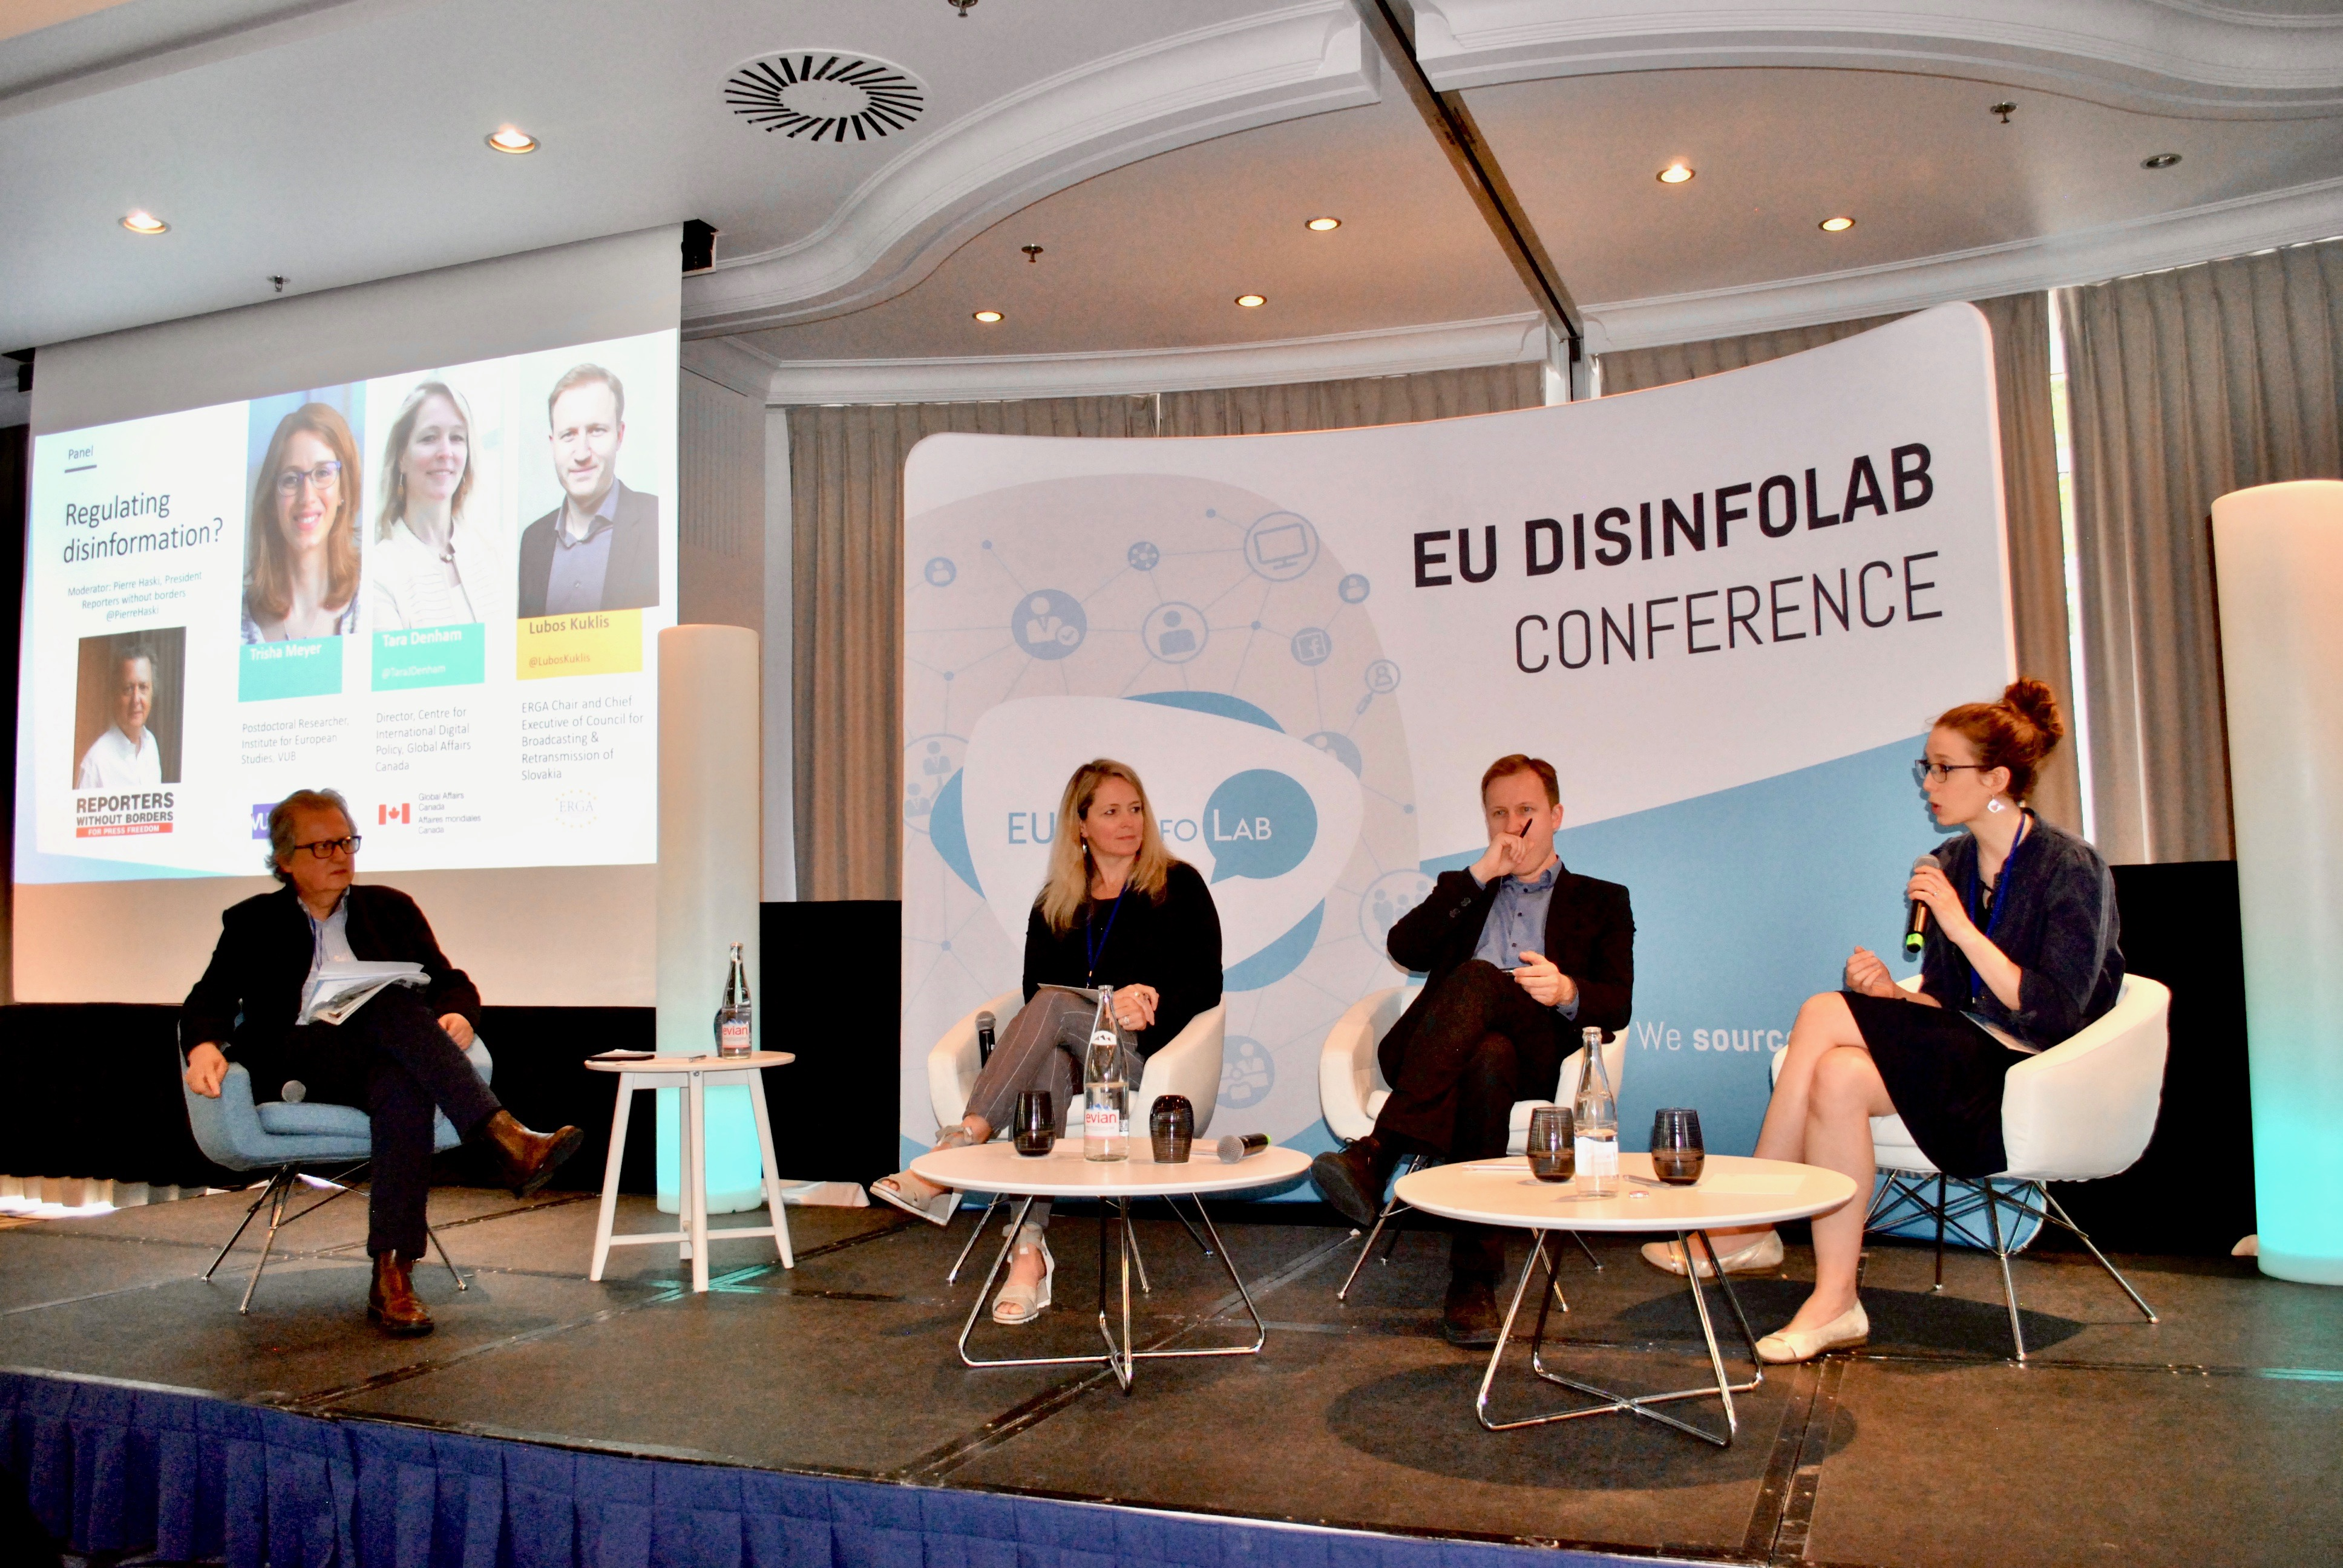 EU DisinfoLab conference 2019 - Fastlane Communication Agency